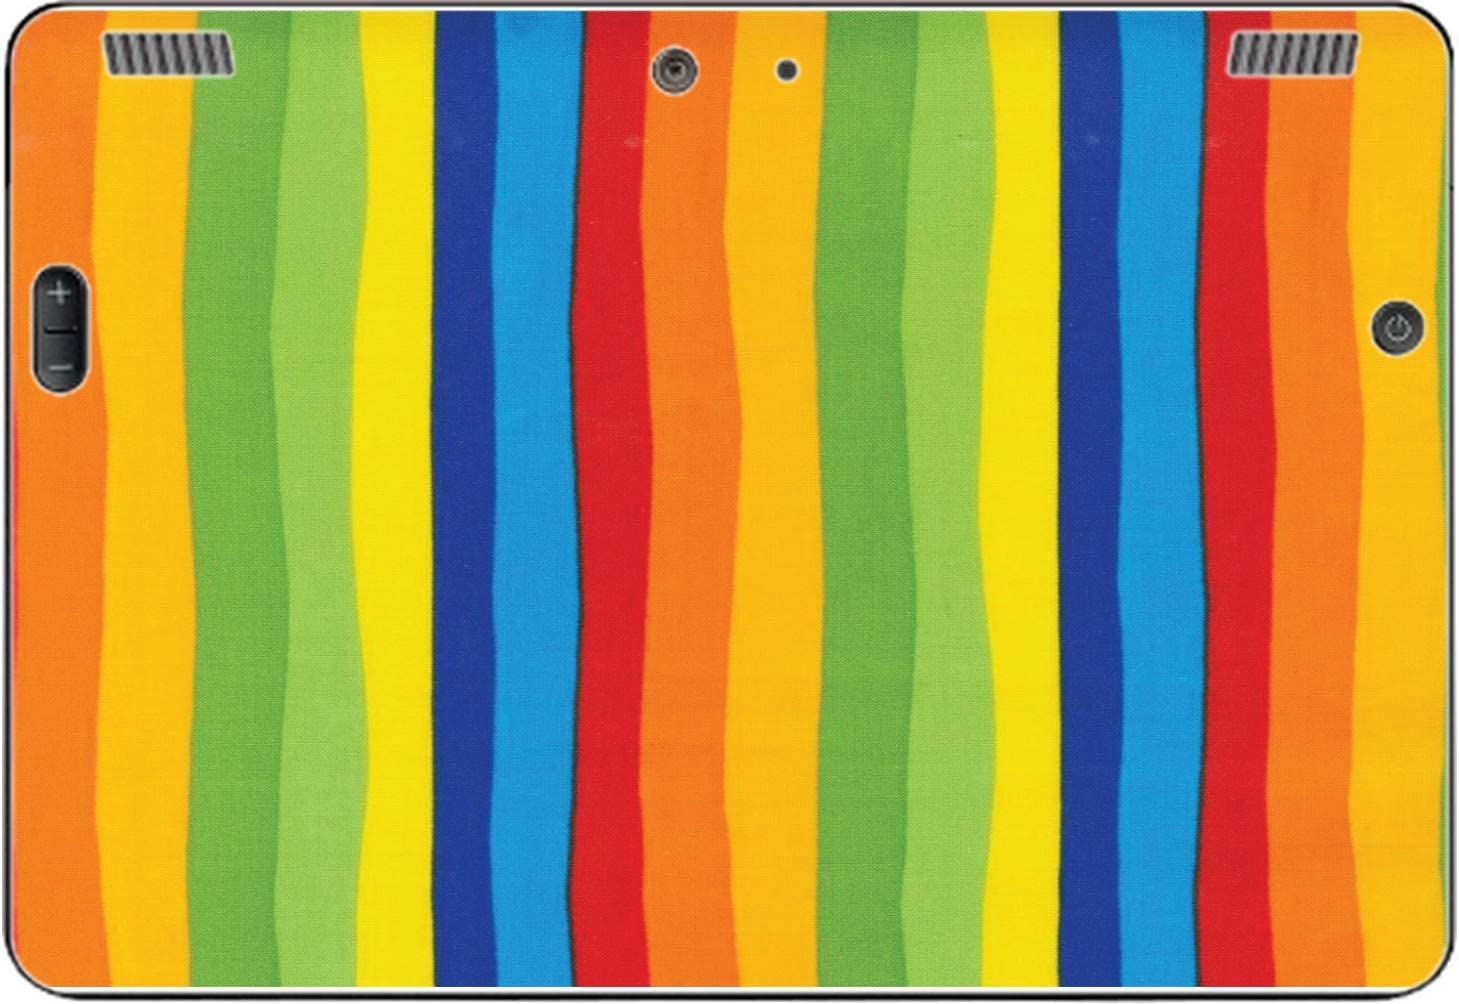 egeek amz Vertical Max 65% OFF Rainbow Quality inspection Stripes Vinyl for Skin Sticker Decal